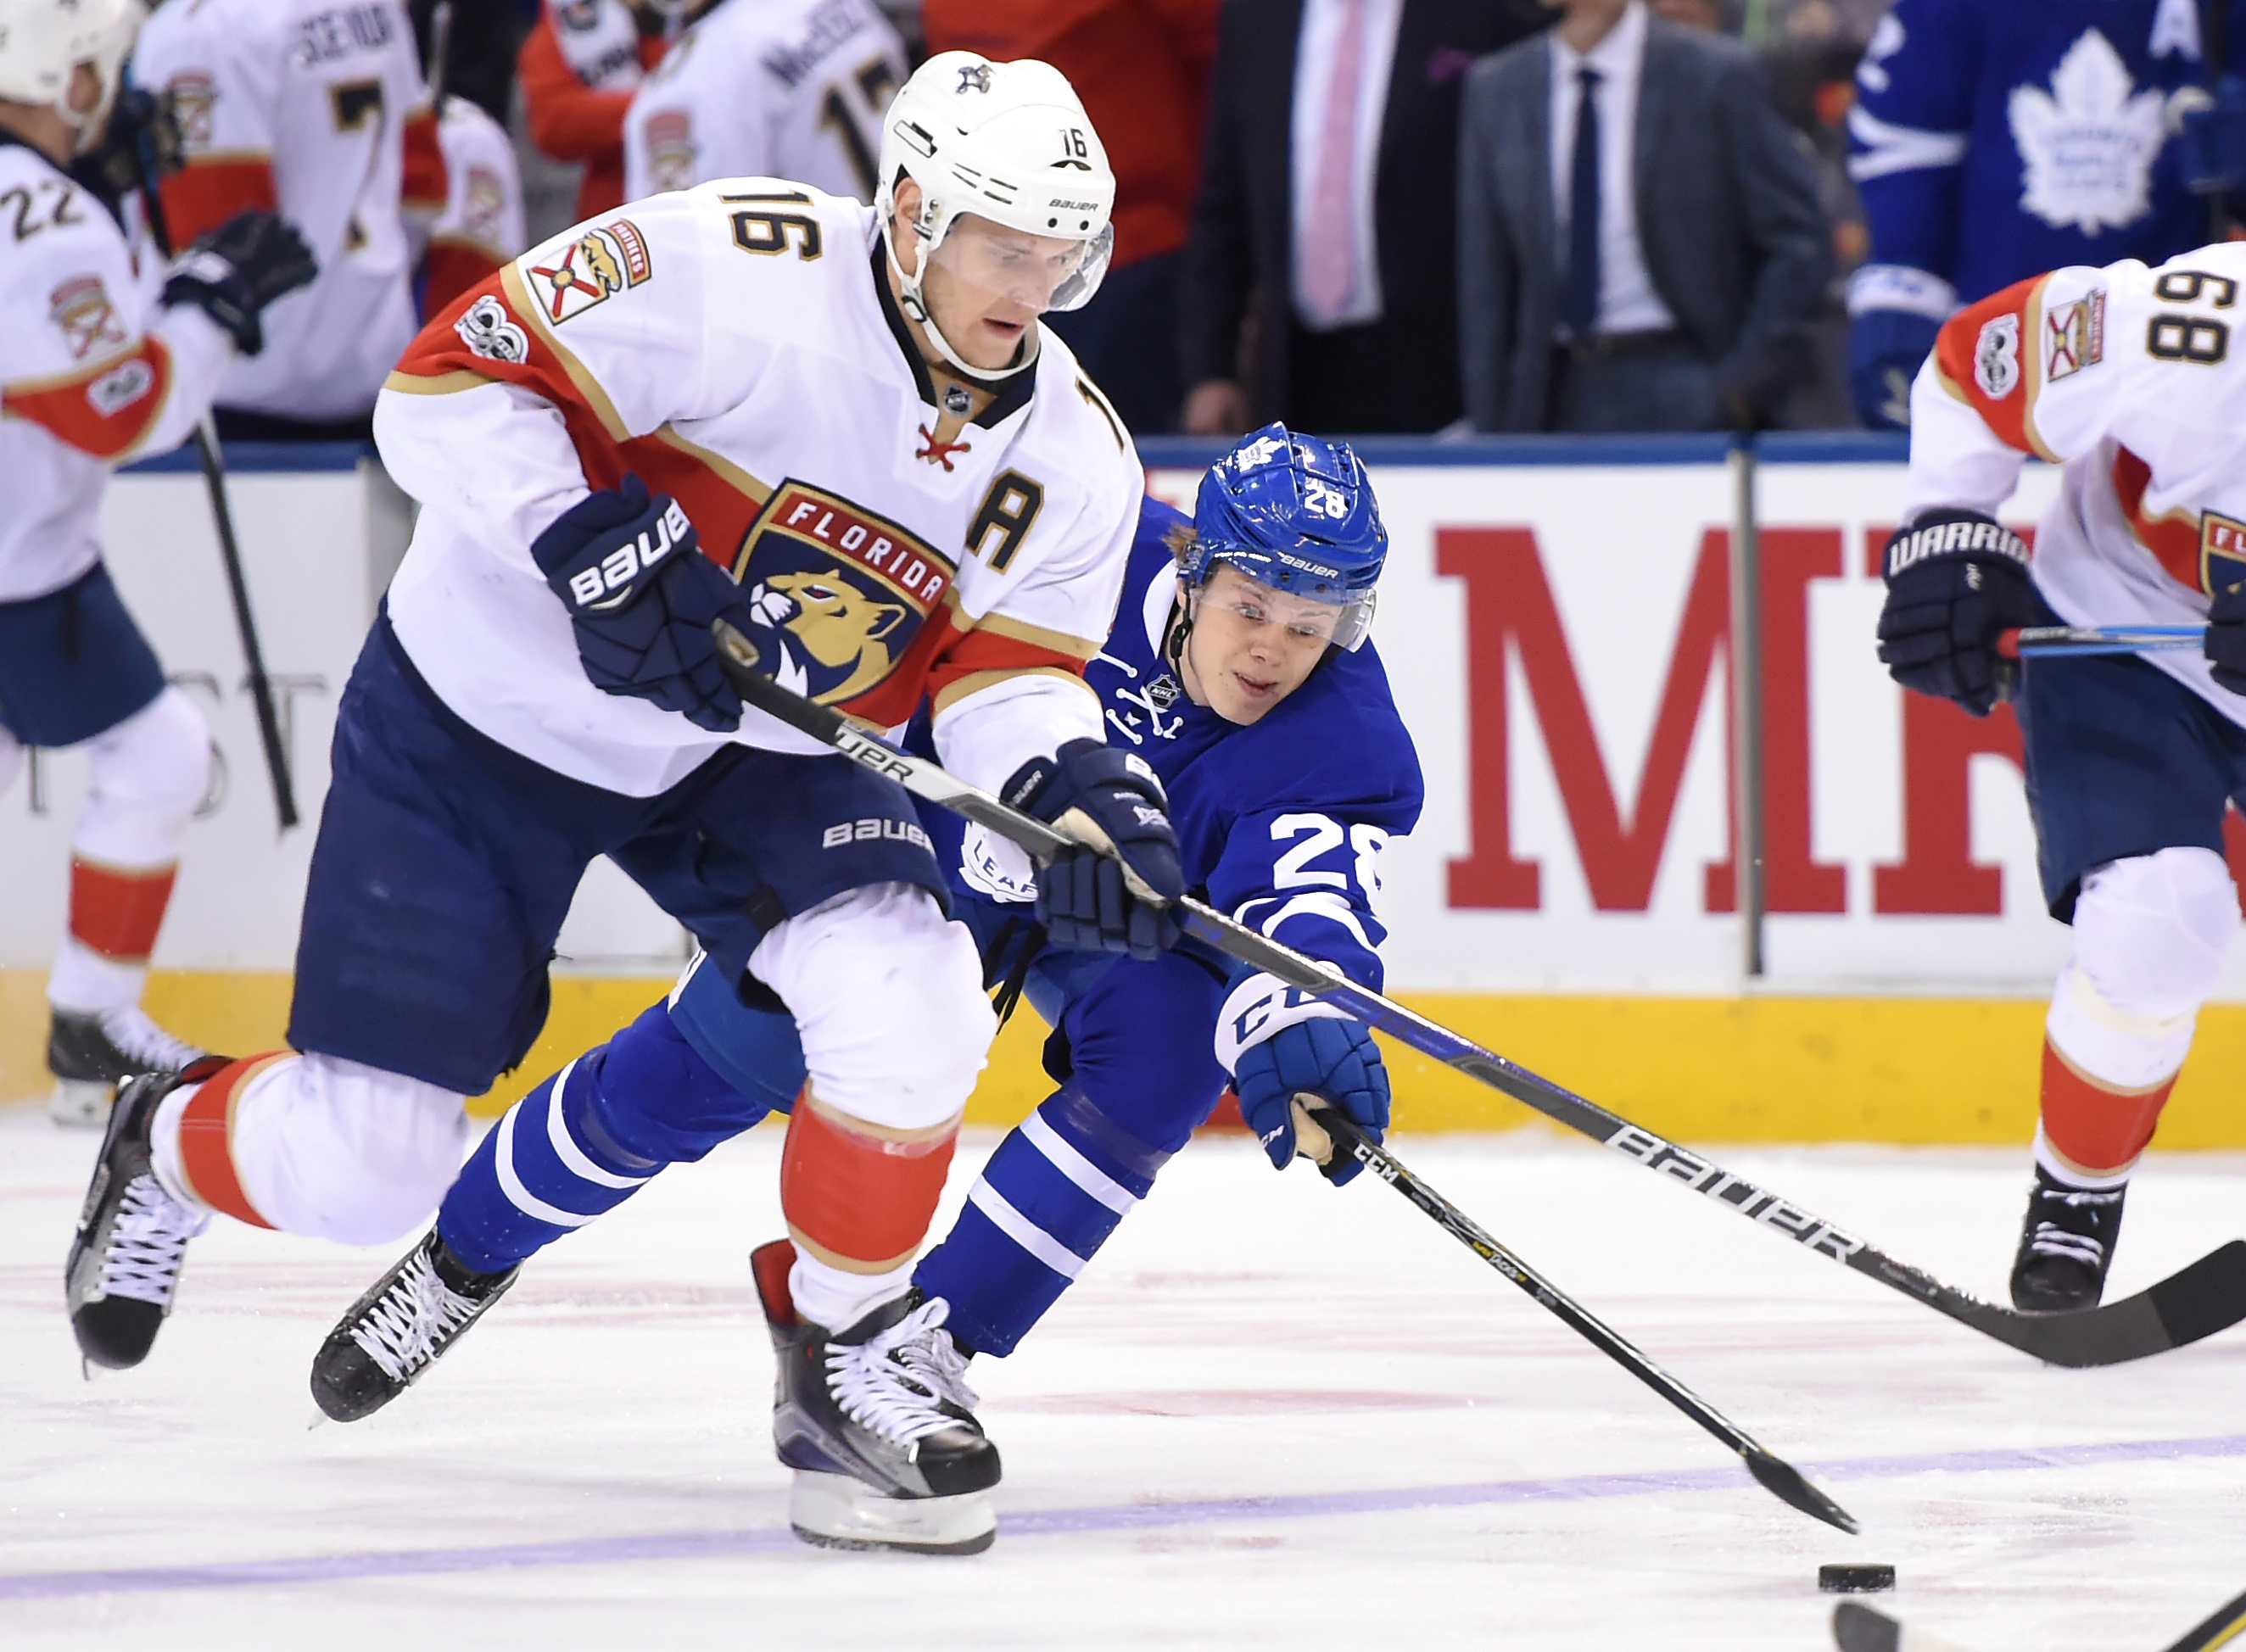 9978408-nhl-florida-panthers-at-toronto-maple-leafs